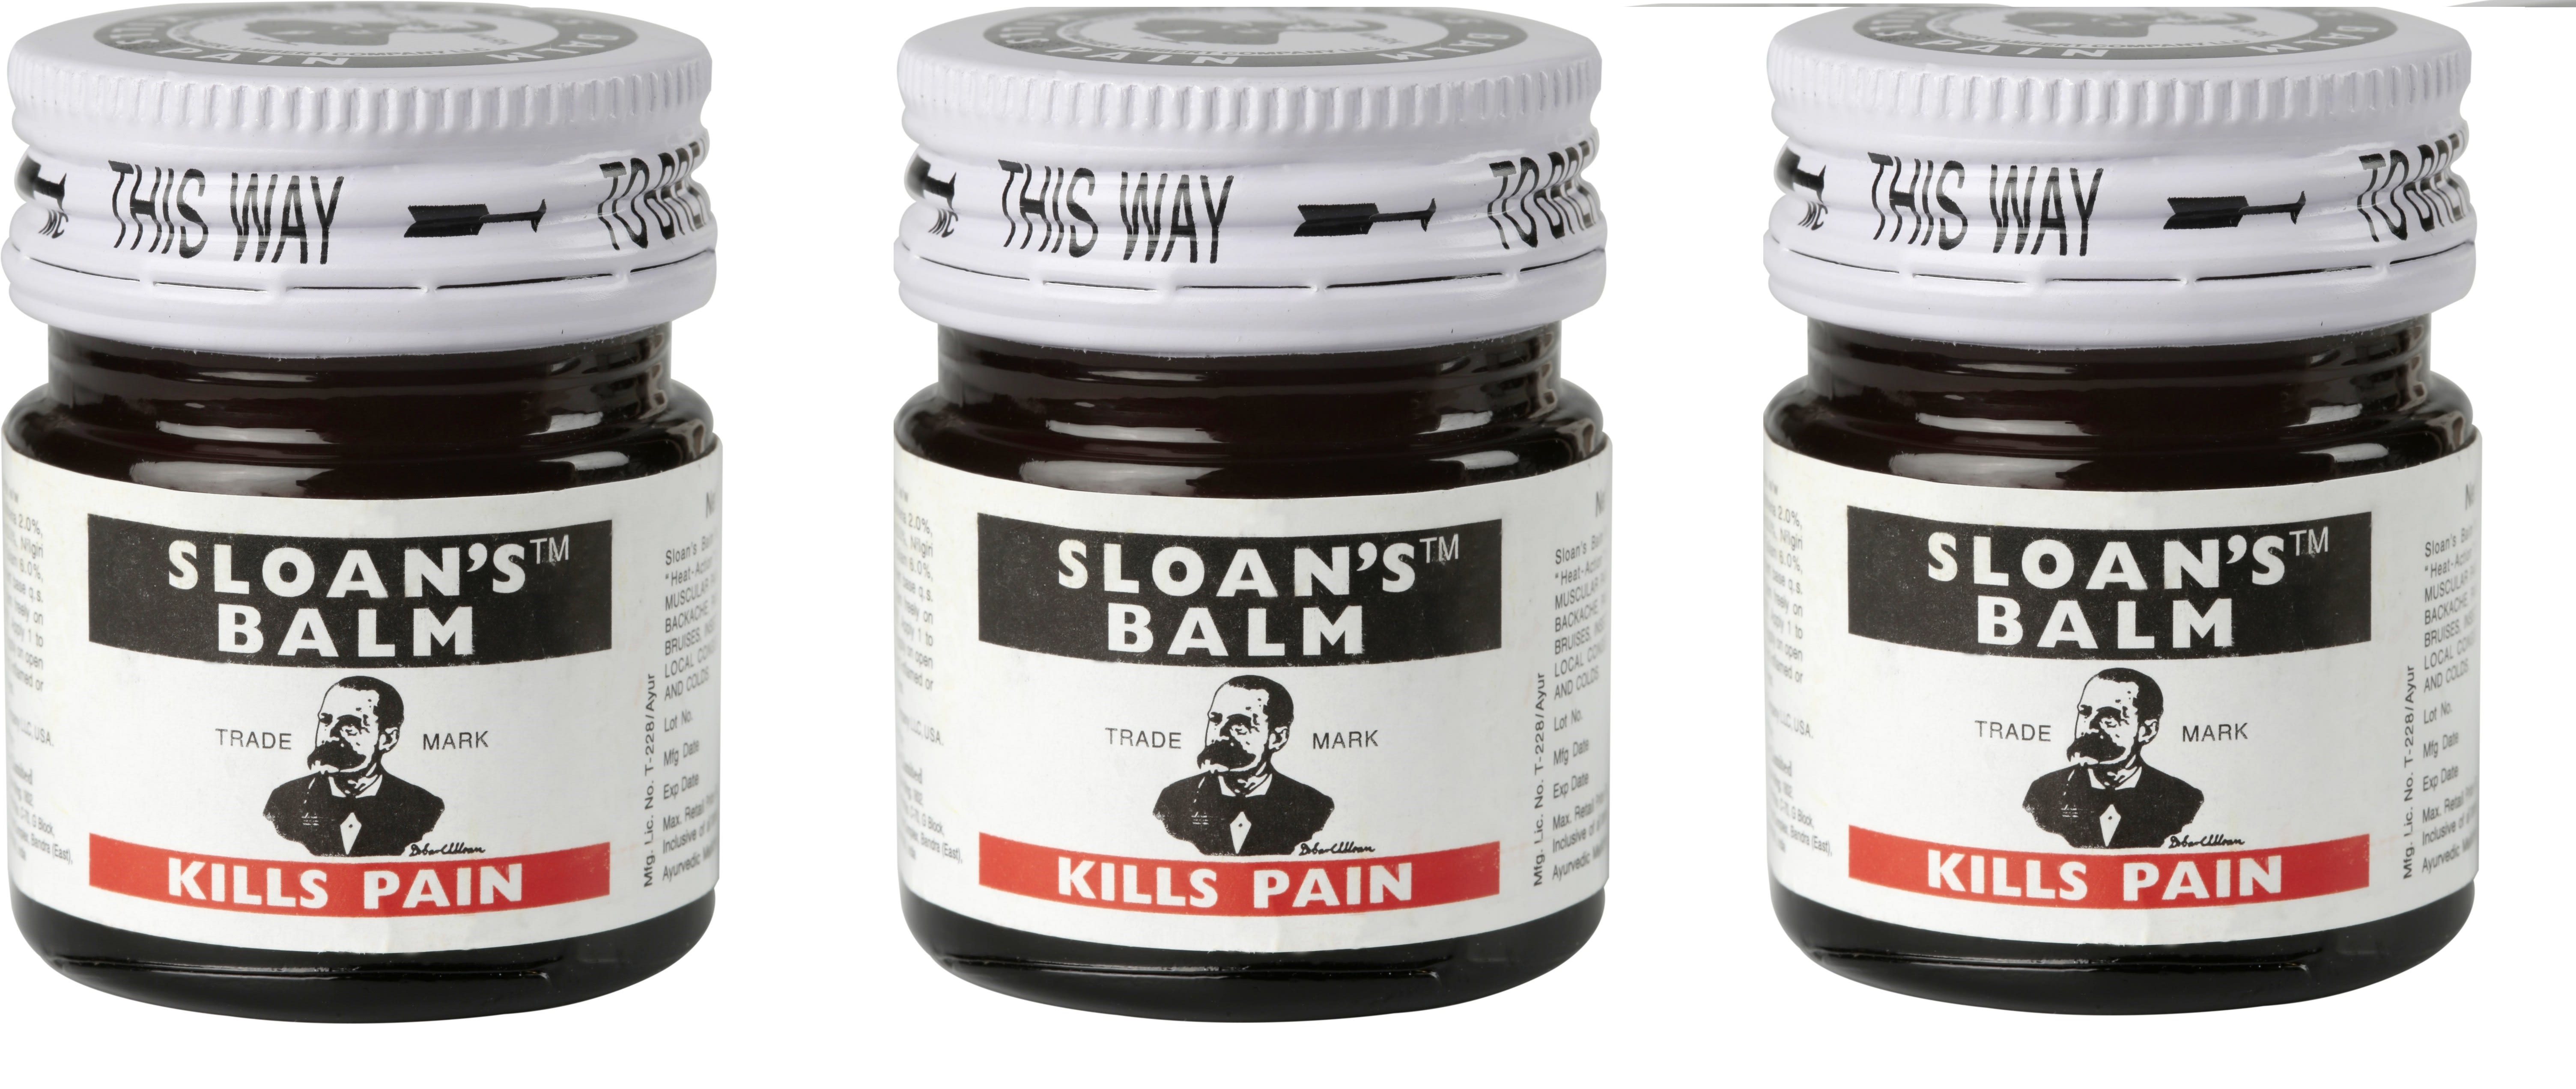 Sloan's Balm Pack of 3